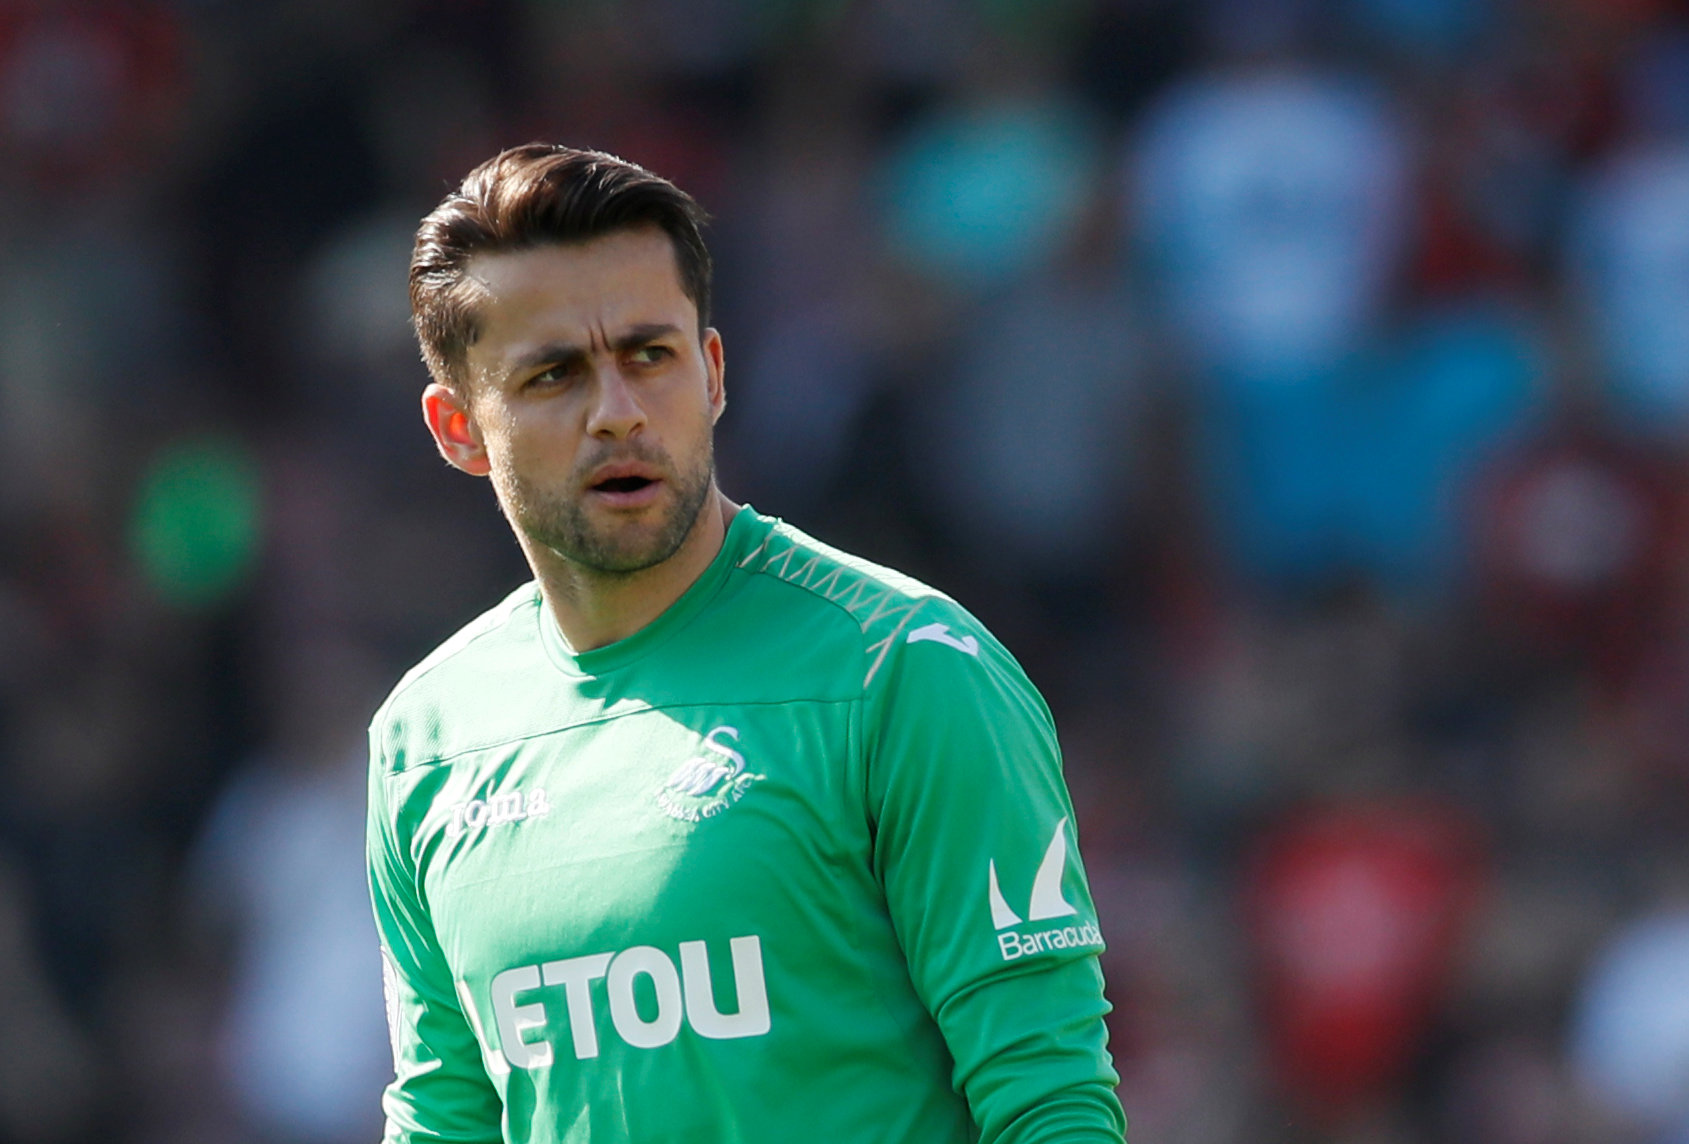 West Ham have reportedly had bids rejected for Lukasz Fabianski (pictured) and Alfie Mawson. Picture: Action Images